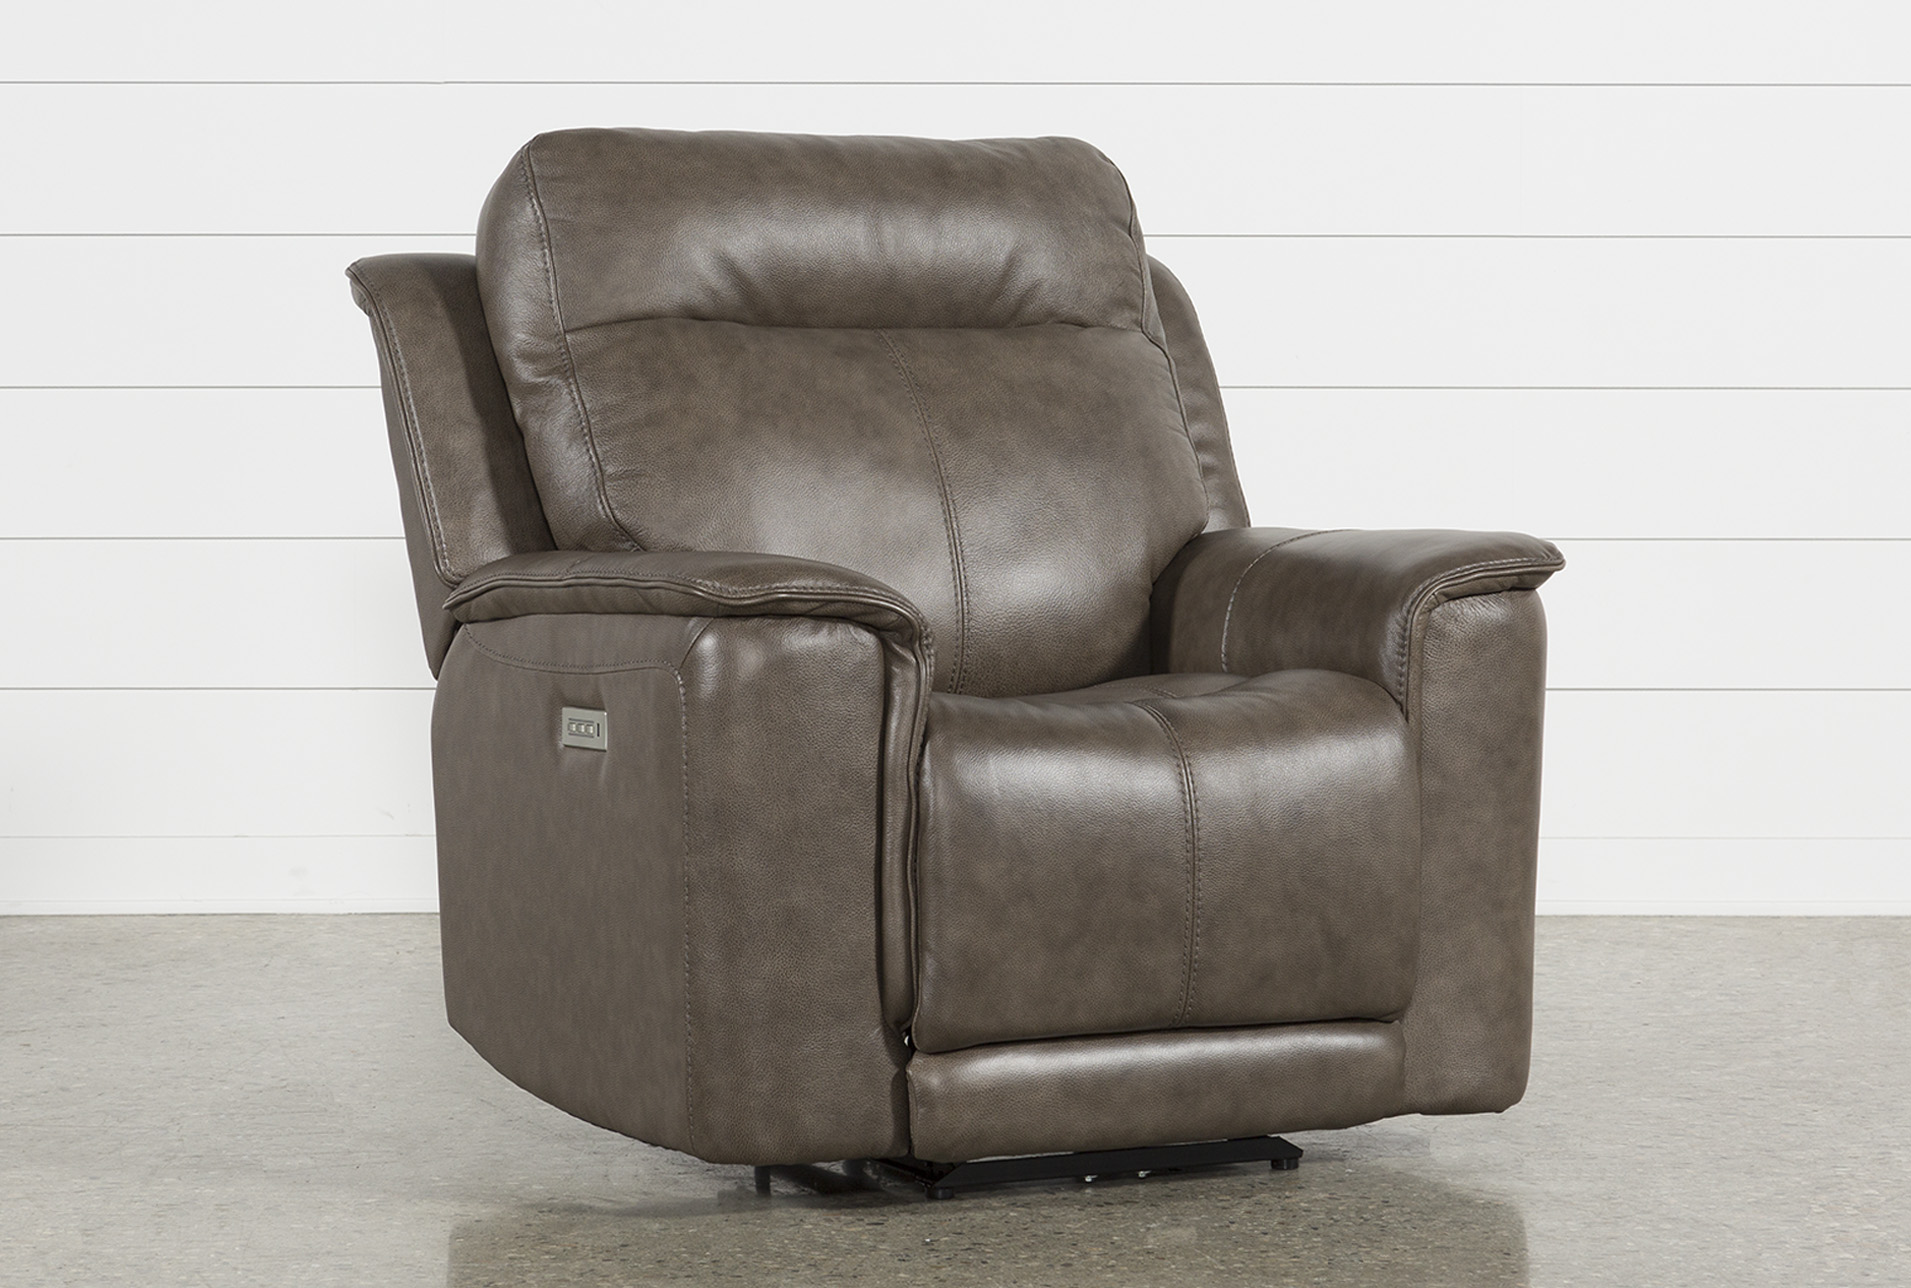 Walsh Mink Power Recliner W/Power Headrest, Lumbar U0026 Usb